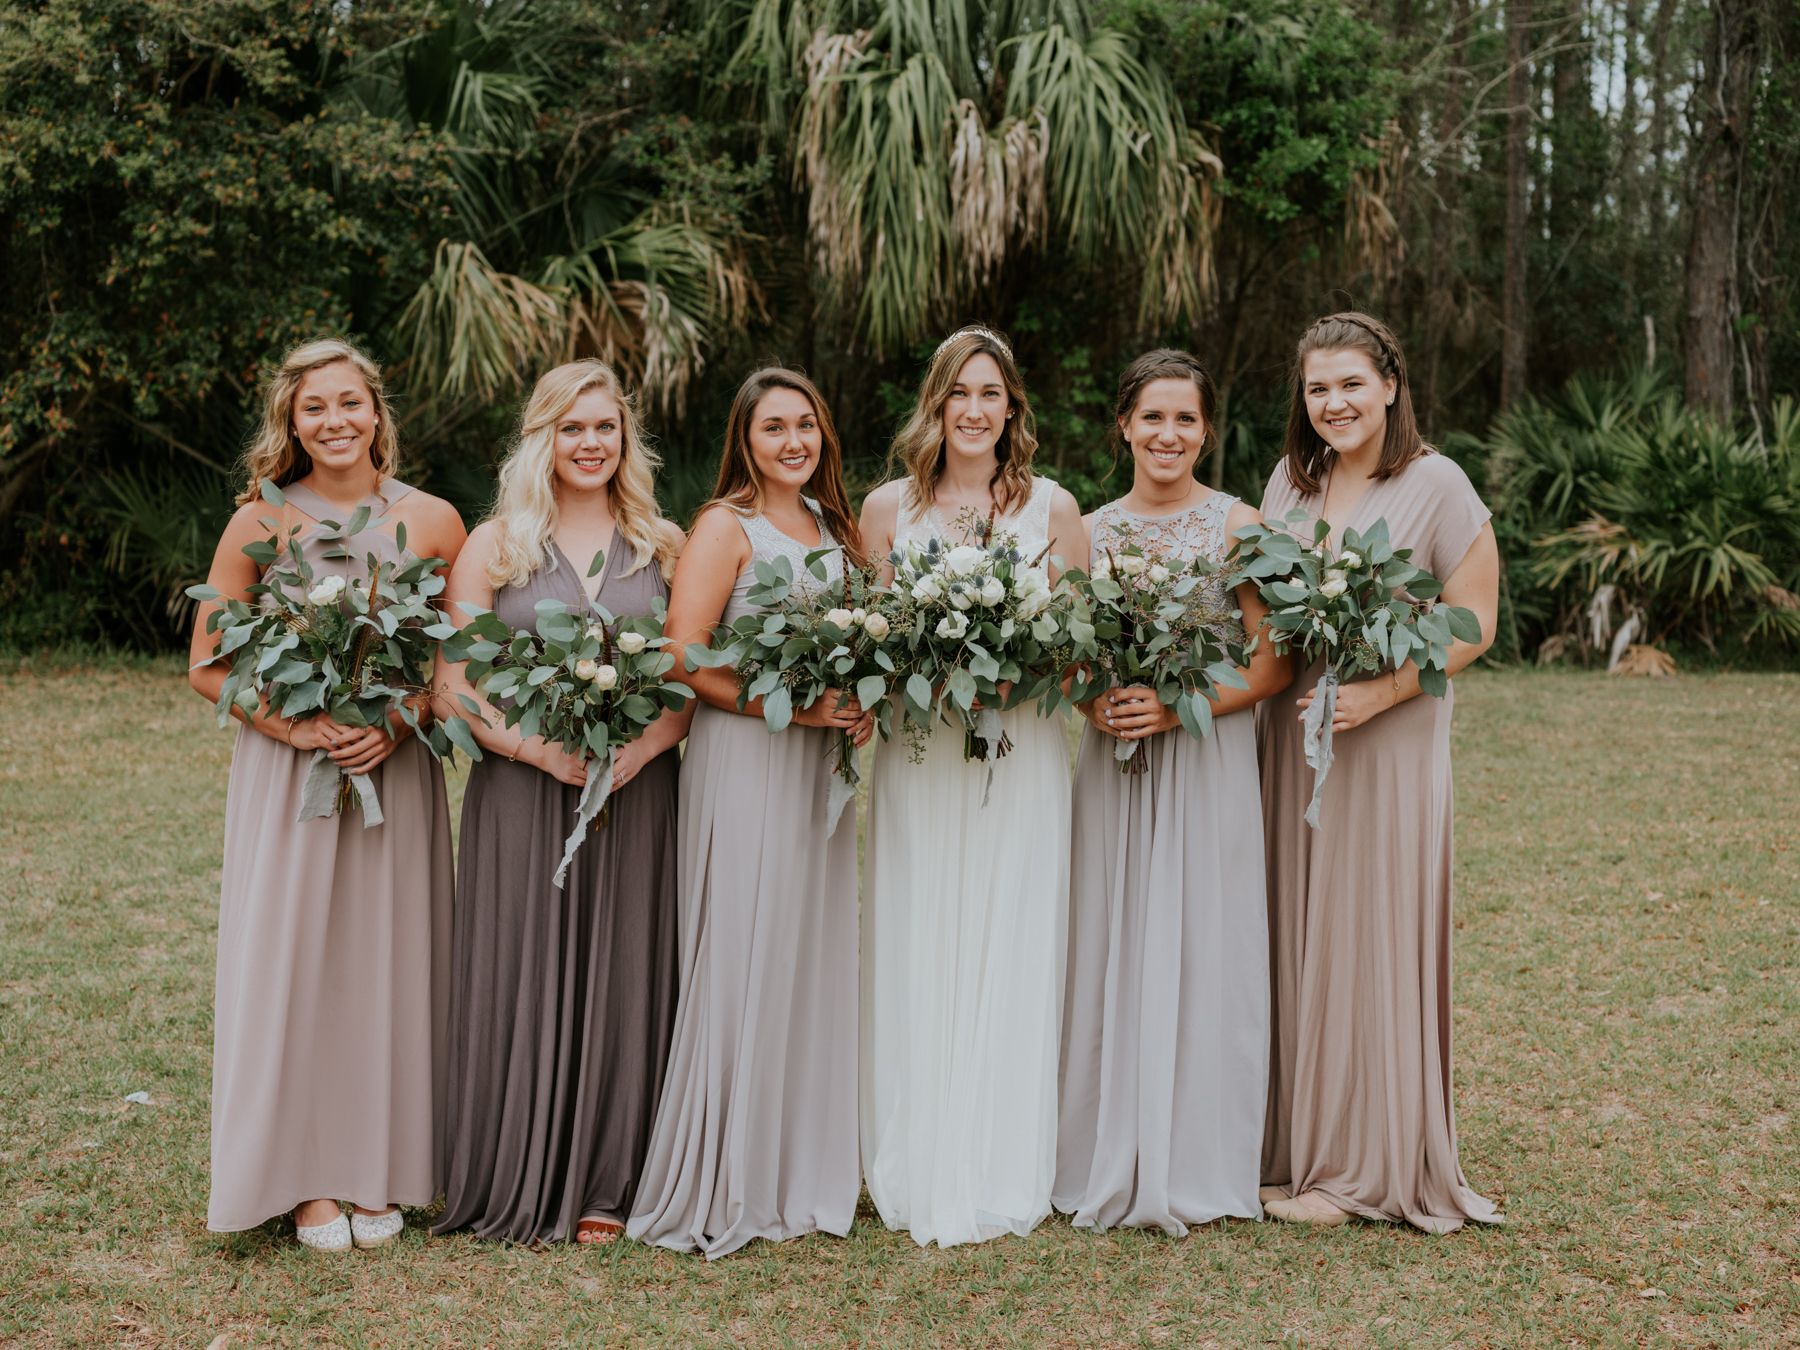 Eucalyptus wedding bouquets